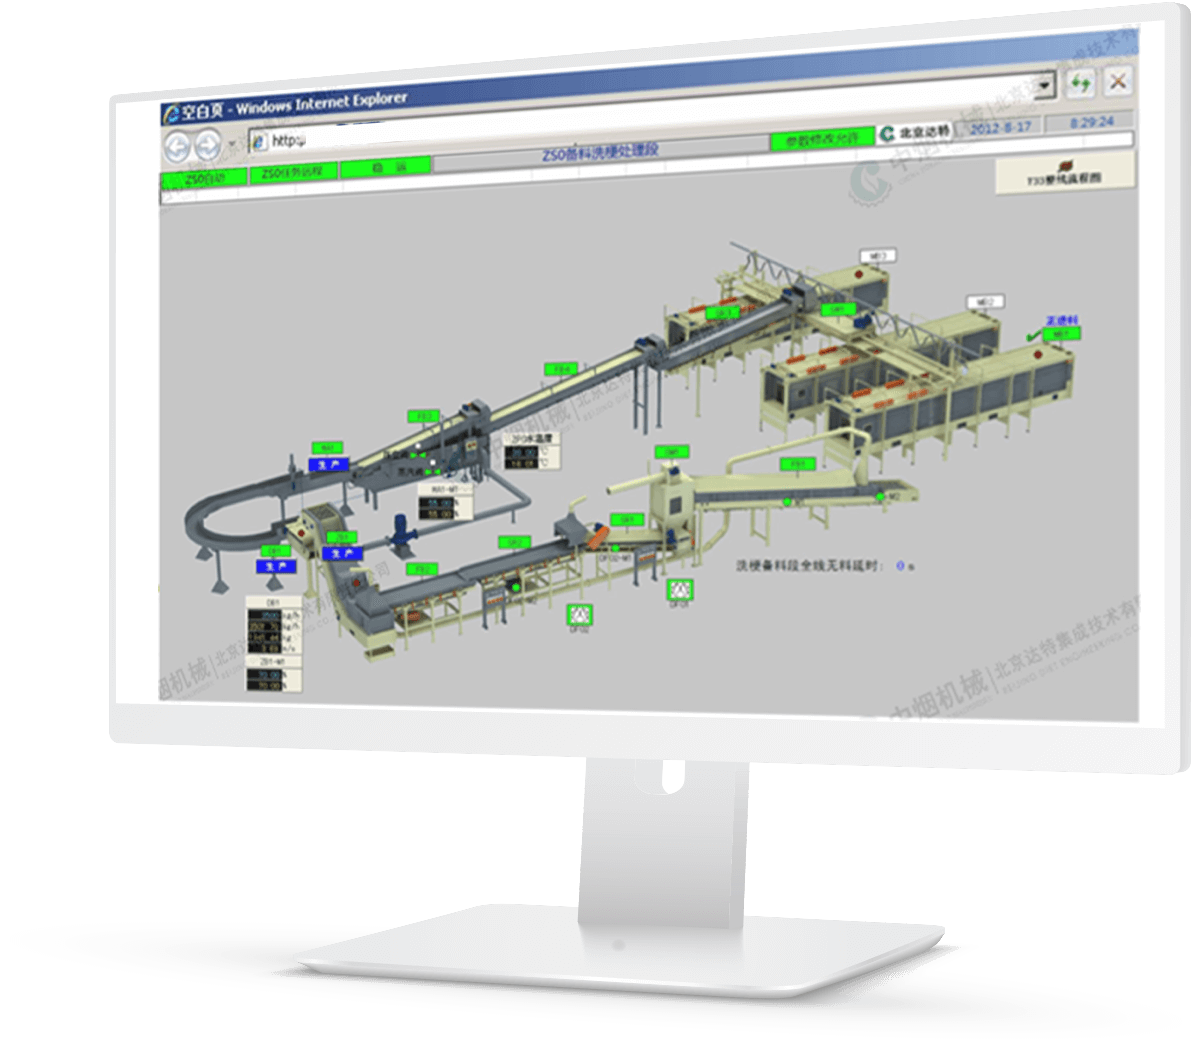 GE Digital's HMI/SCADA software helps manufacturers with centralized monitoring